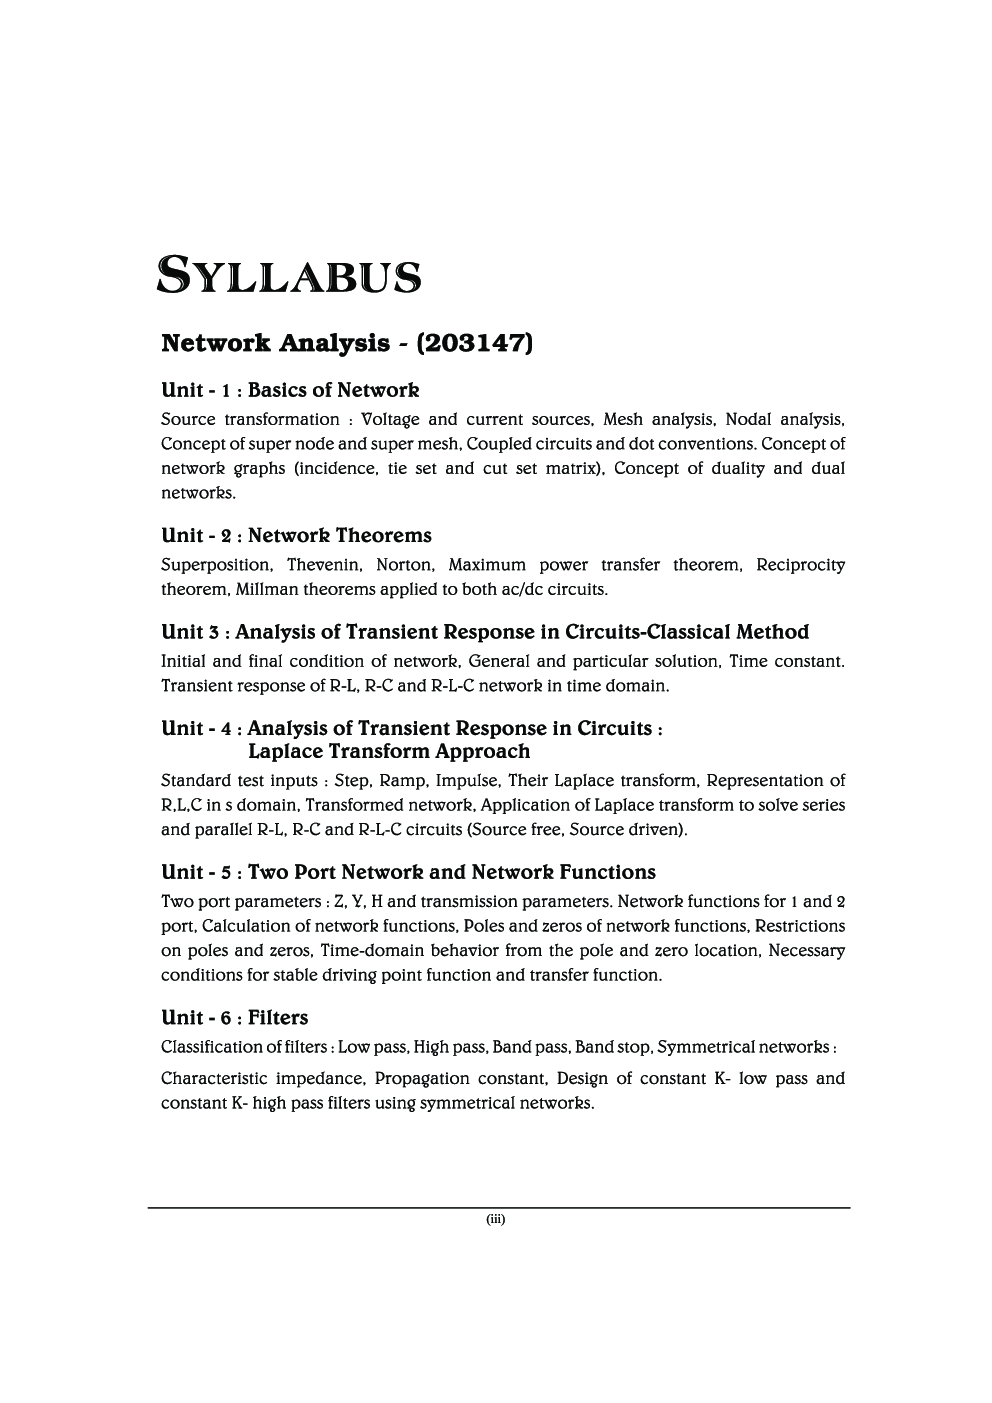 Network Analysis MCQ BOOK - Page 4